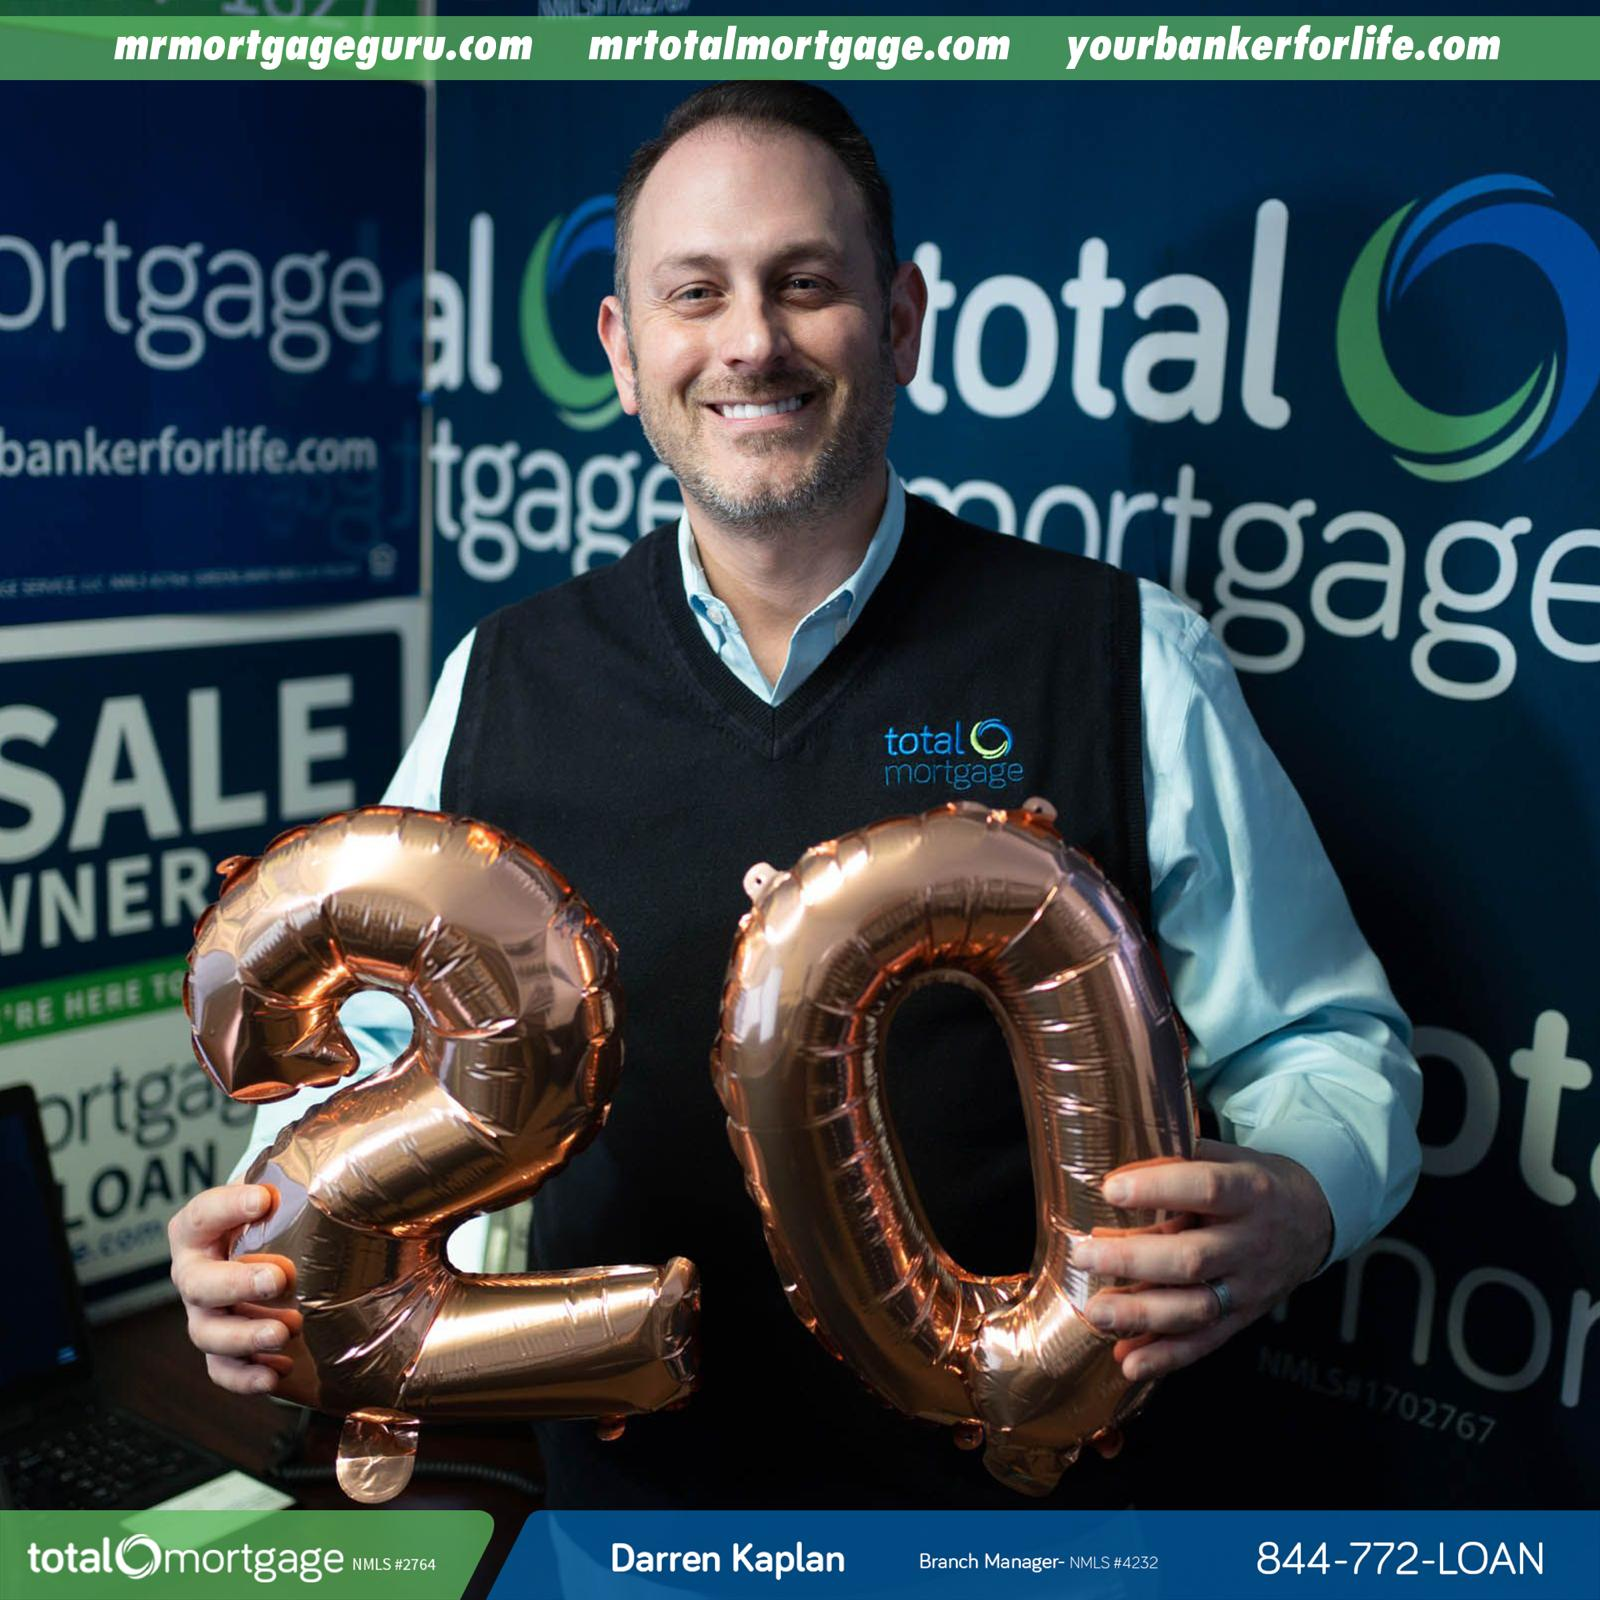 Darren Kaplan; The Mortgage Banker Taking the Mortgage Industry By Storm